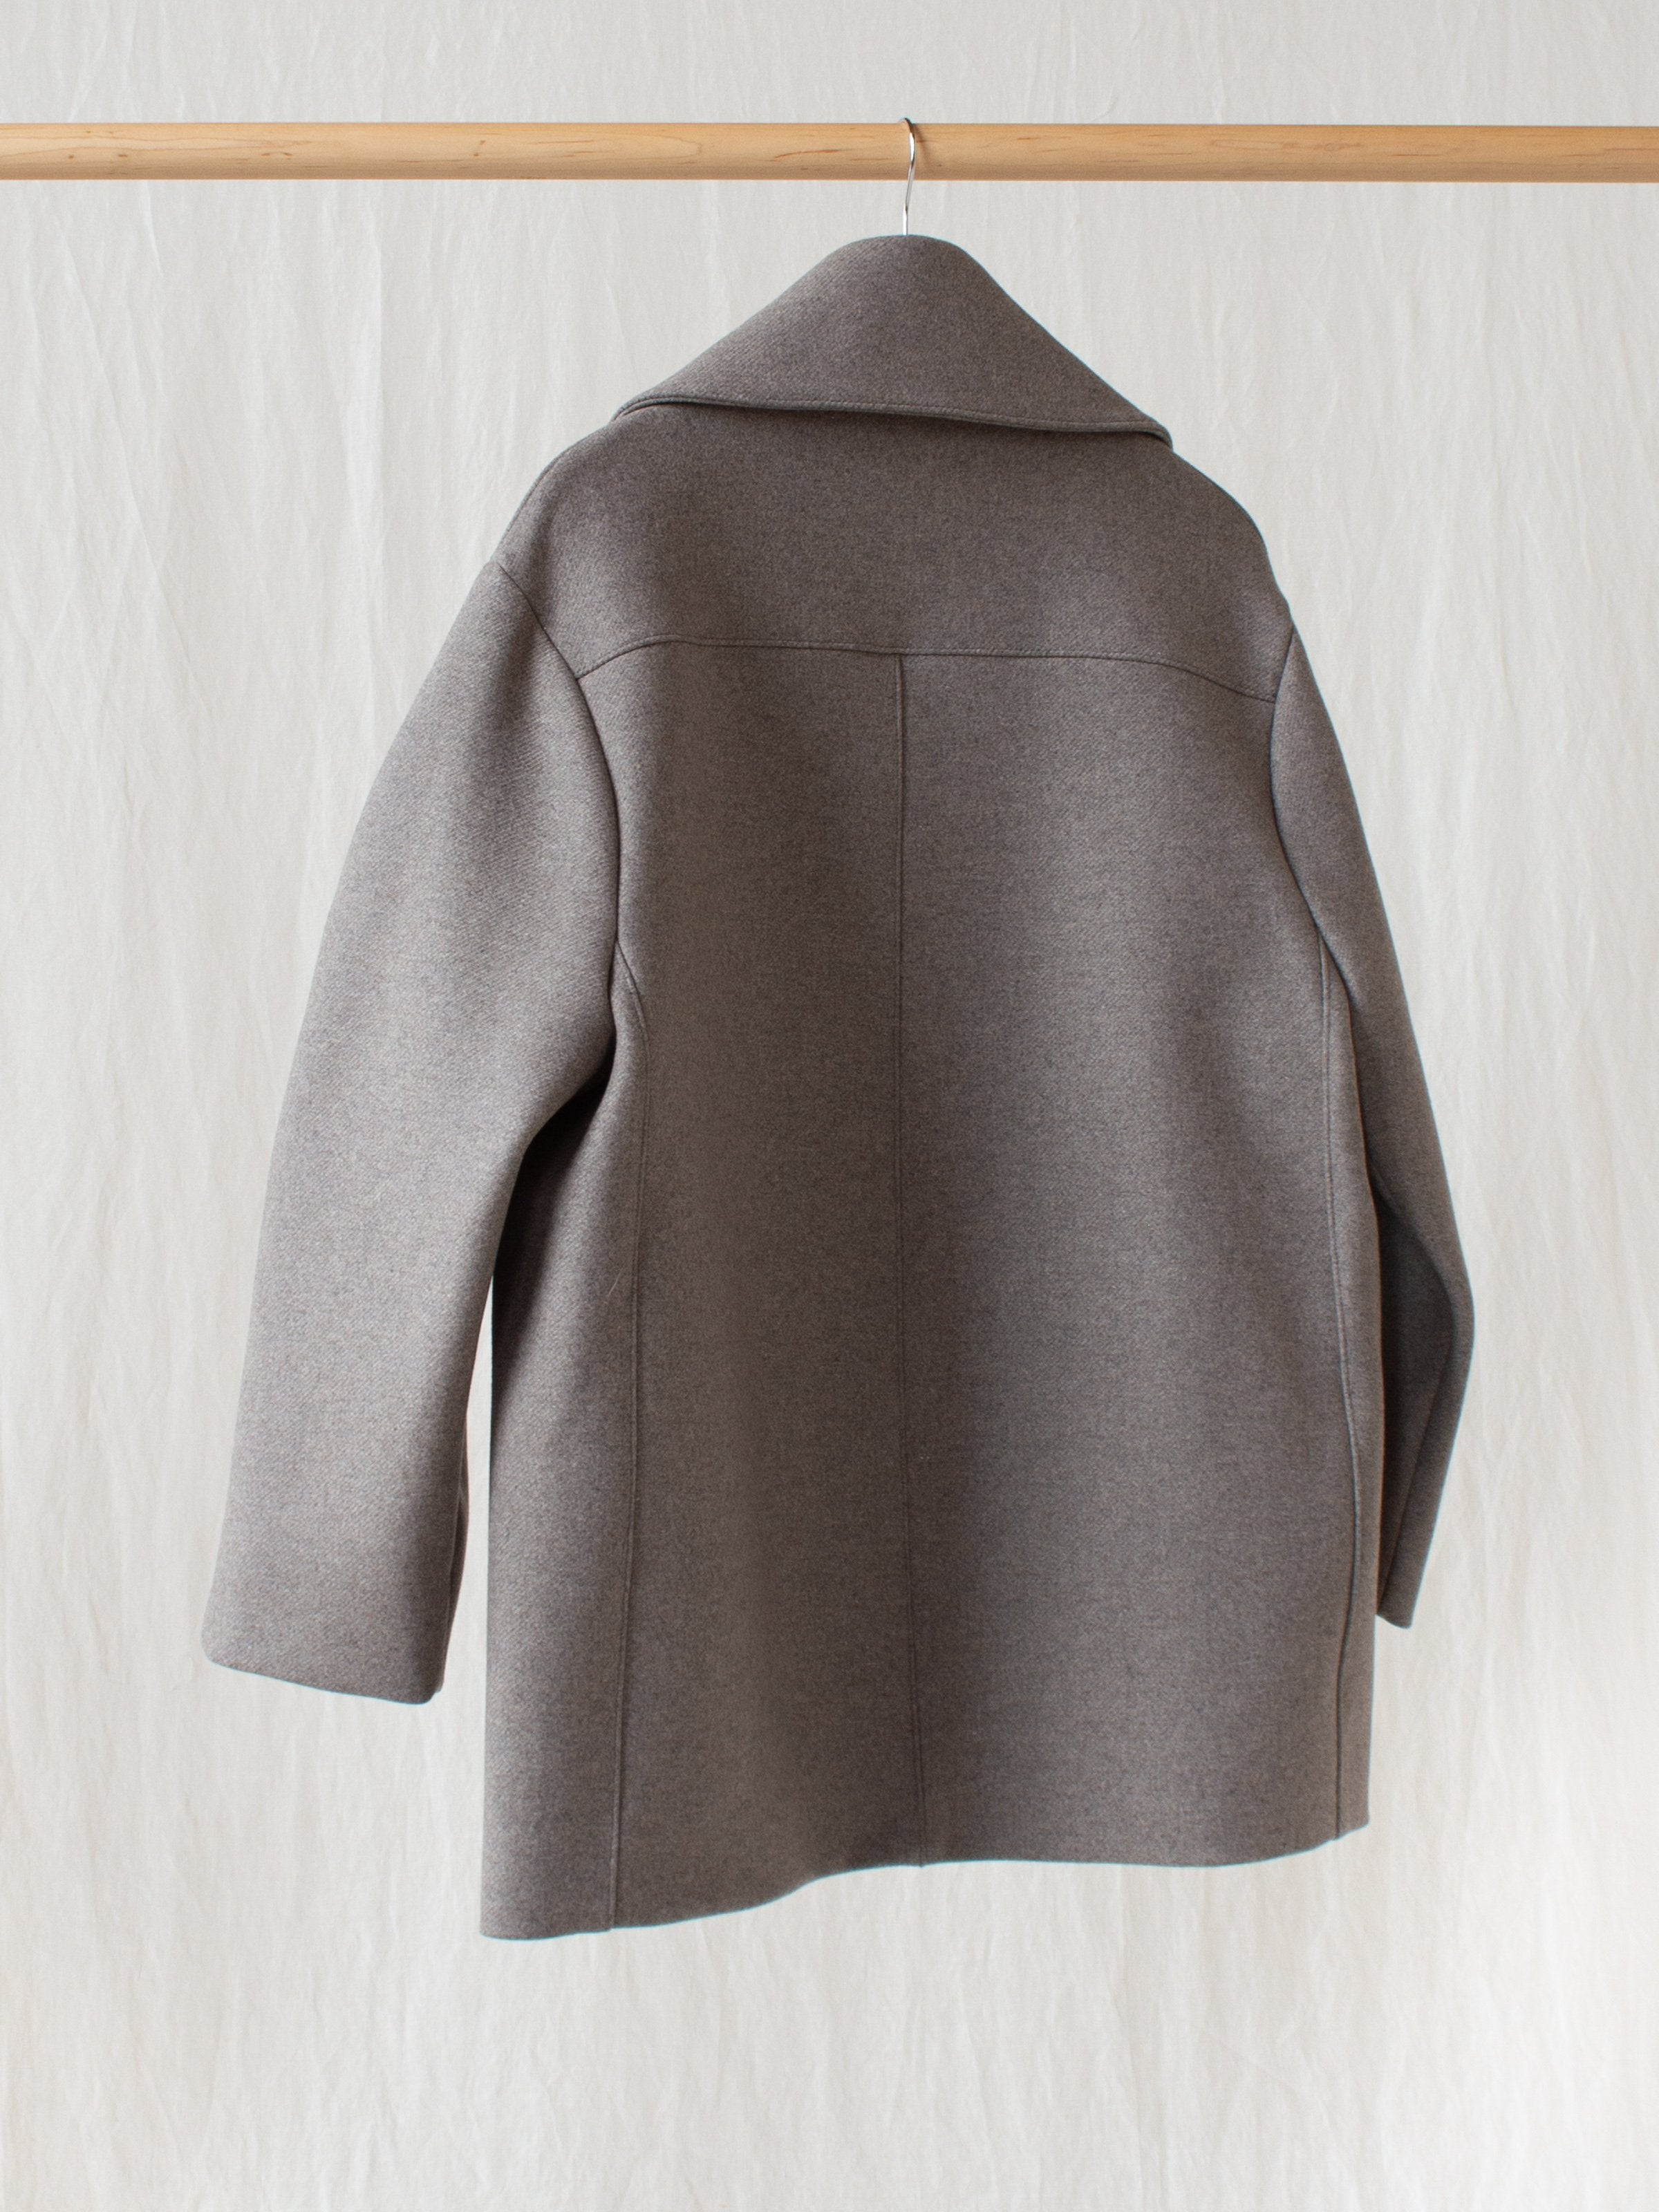 Myrio Oversized Coat in Double Faced Wool